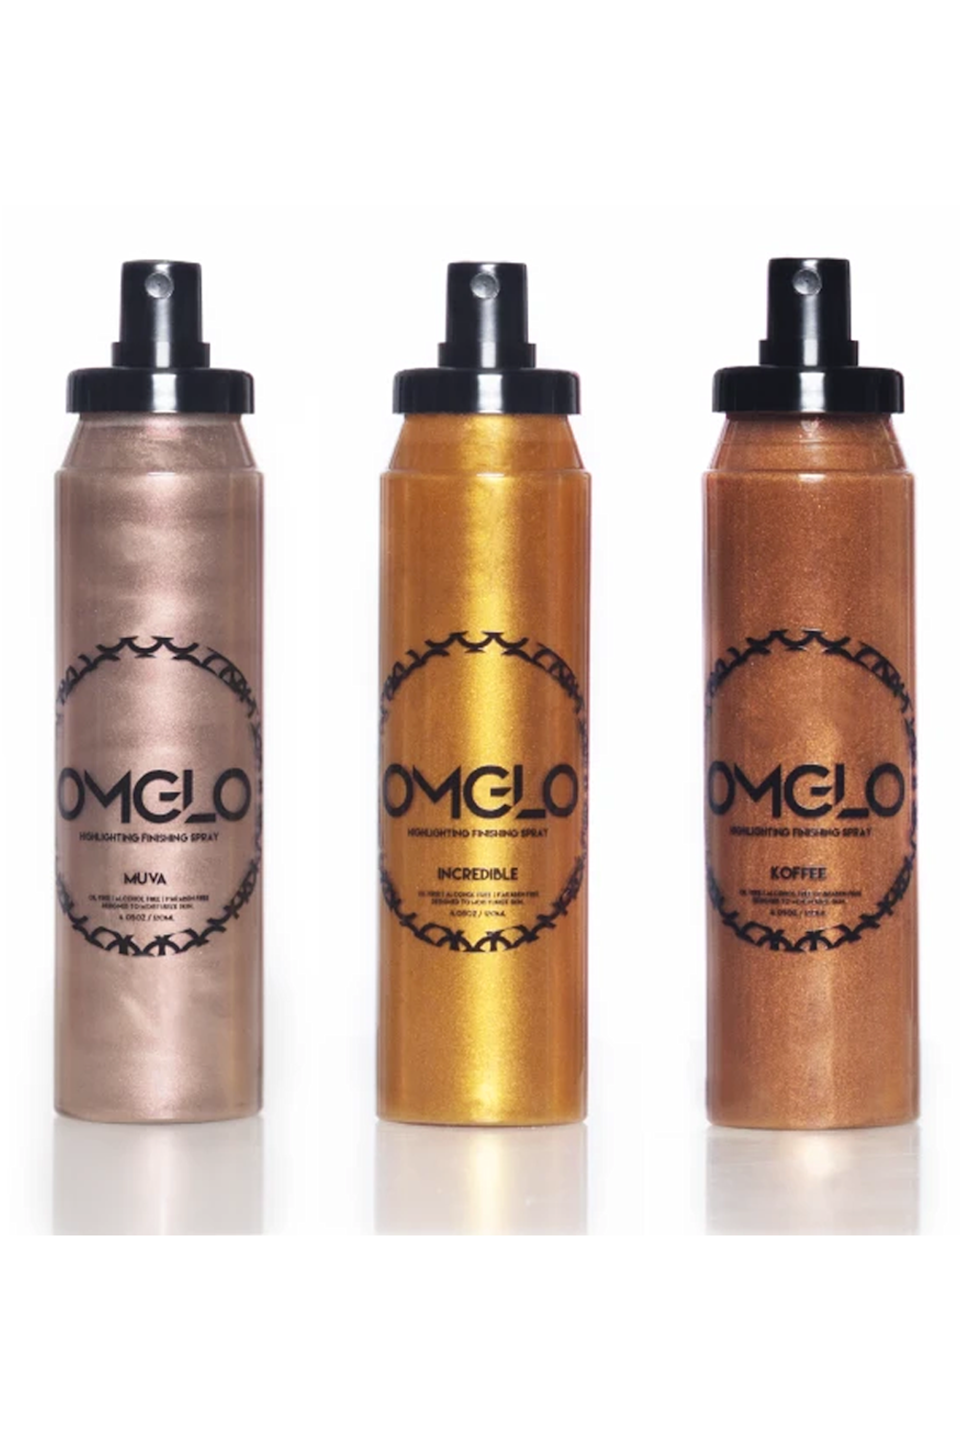 """<p>omglocosmetics.com</p><p><strong>$80.00</strong></p><p><a href=""""https://omglocosmetics.com/collections/sets/products/mulan-set"""" rel=""""nofollow noopener"""" target=""""_blank"""" data-ylk=""""slk:Shop Now"""" class=""""link rapid-noclick-resp"""">Shop Now</a></p><p>K, so you can—and should—be using these shimmery sprays year-round (they <strong>legitimately make your skin look phenomenal</strong>), but they're basically a requirement for Halloween when you can really load them up on your clavicles, arms, chest, and shins for a super-ethereal Halloween costume (I see you, <a href=""""https://www.cosmopolitan.com/style-beauty/beauty/a22092322/fairy-halloween-makeup-tutorial/"""" rel=""""nofollow noopener"""" target=""""_blank"""" data-ylk=""""slk:fairy makeup"""" class=""""link rapid-noclick-resp"""">fairy makeup</a>).</p>"""